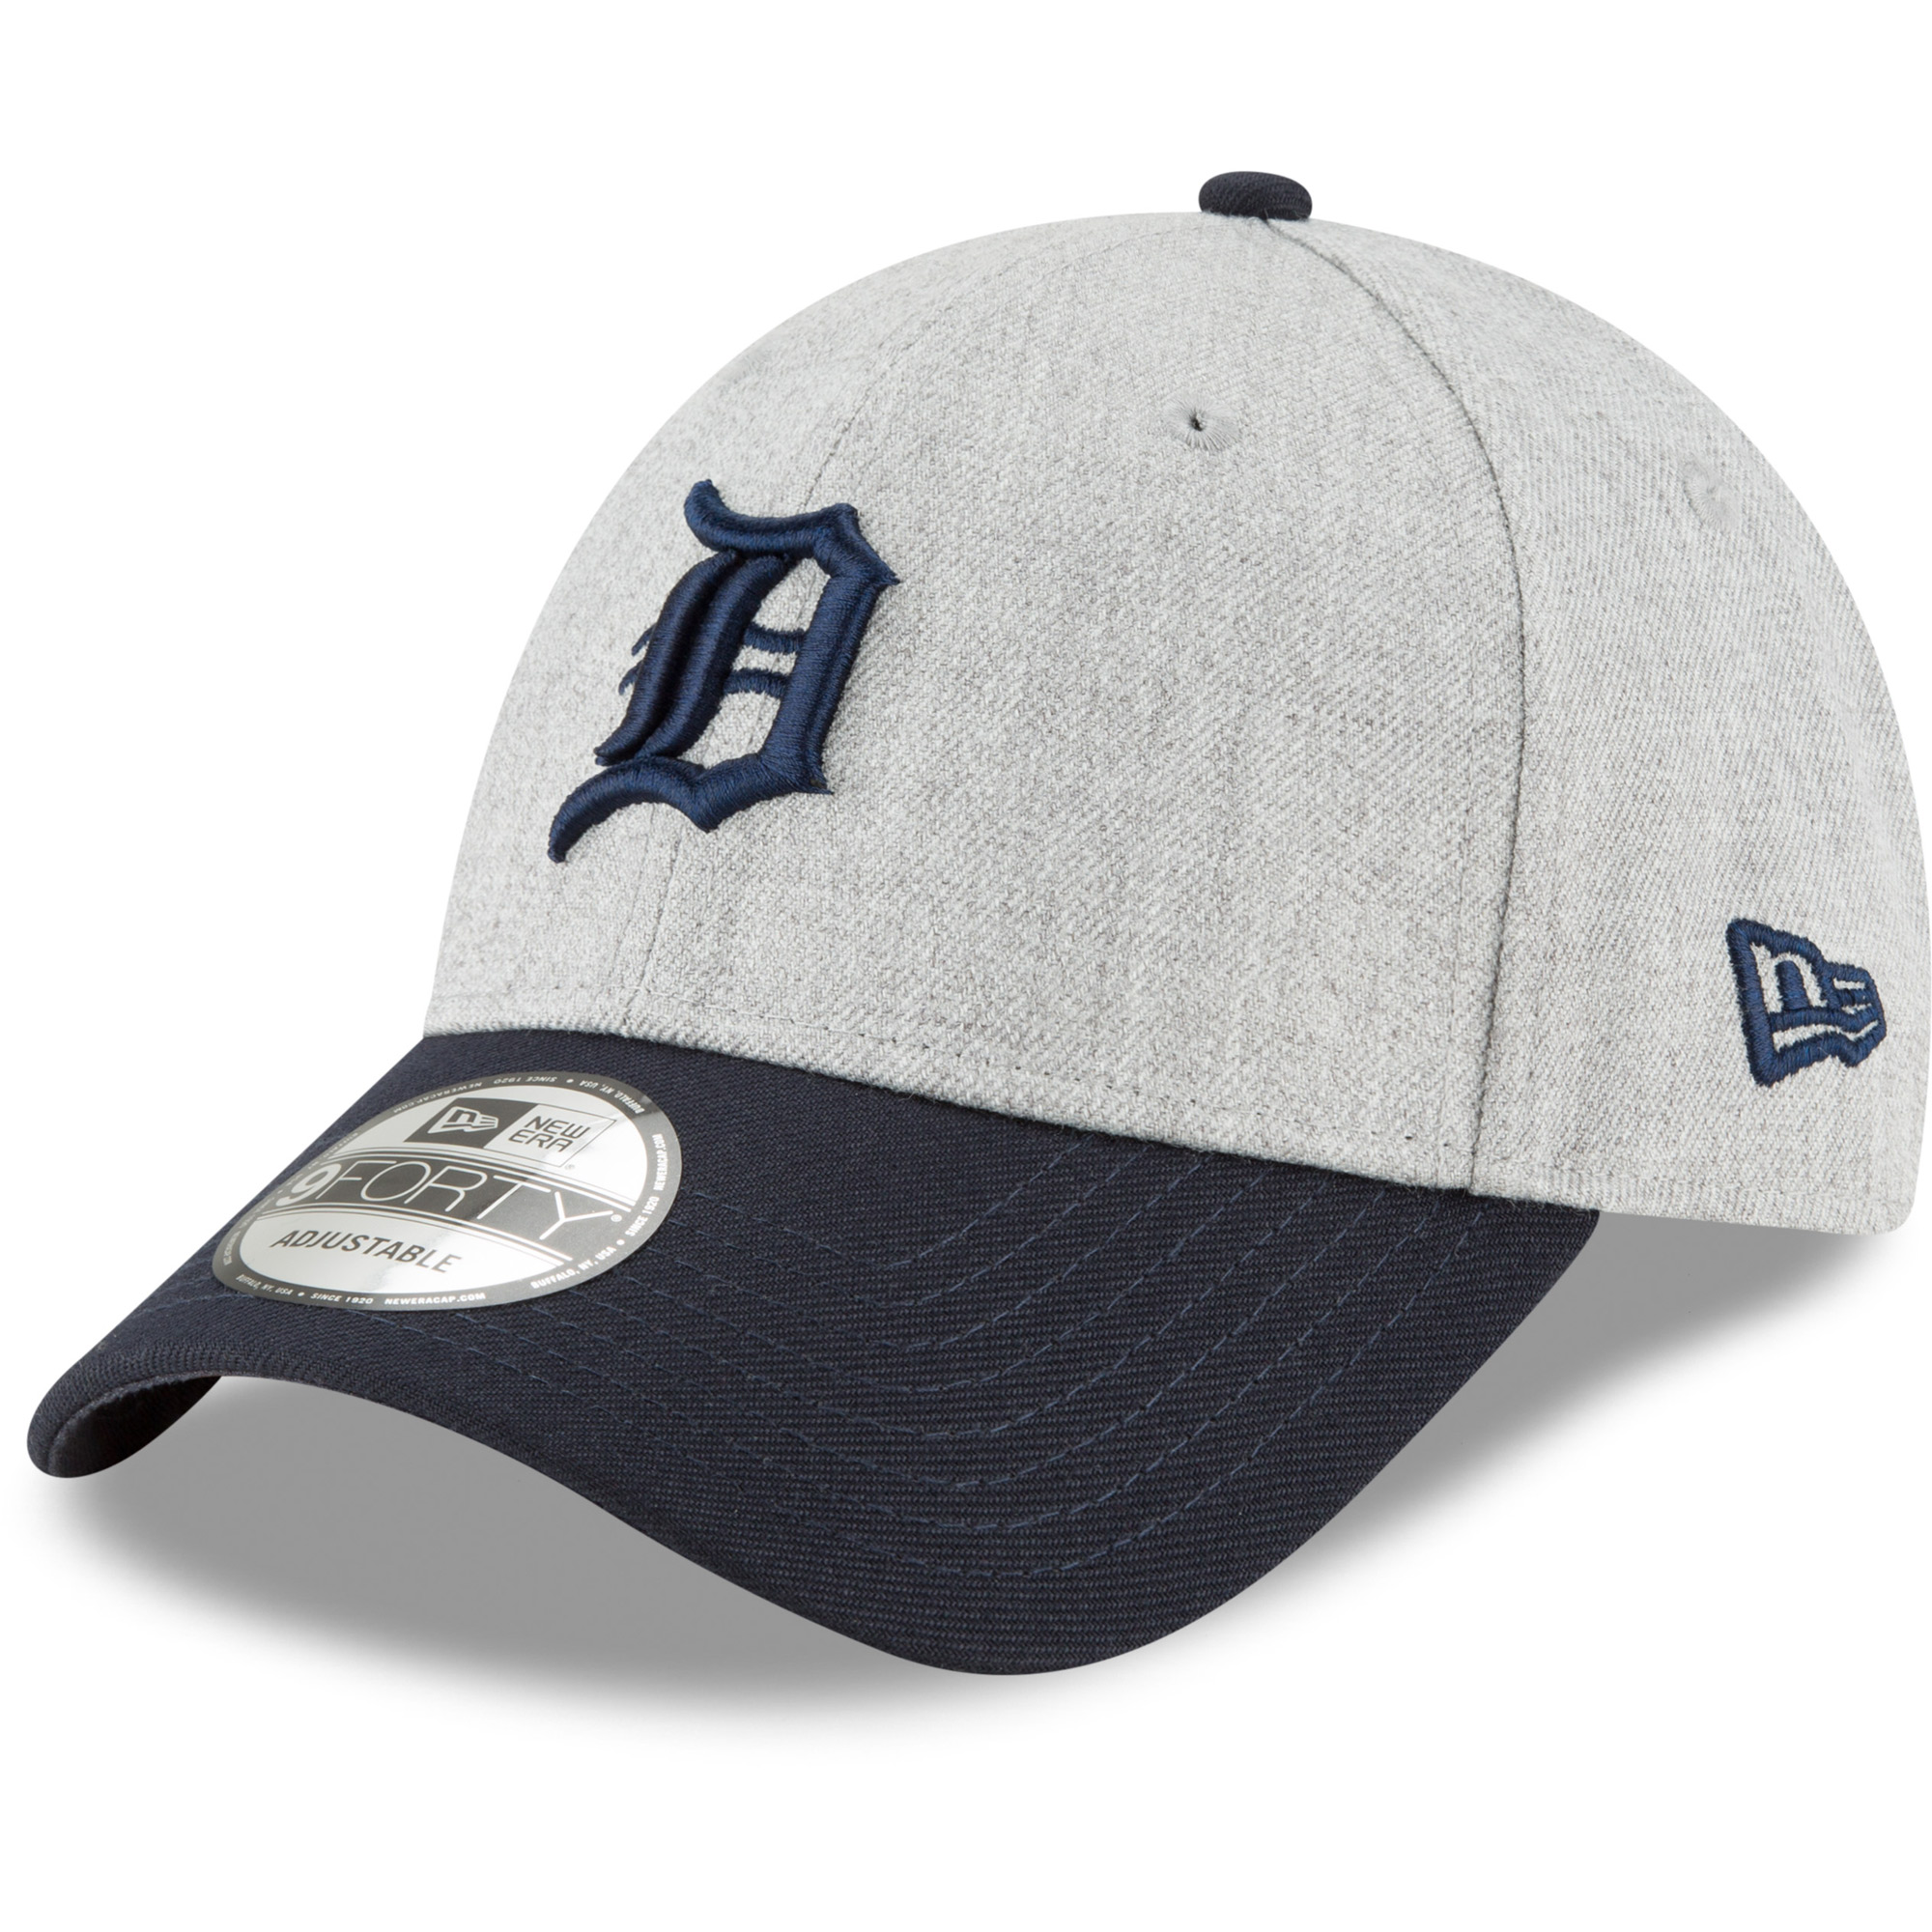 Detroit Tigers New Era 9FORTY The League Adjustable Hat - Heathered Gray/Navy - OSFA